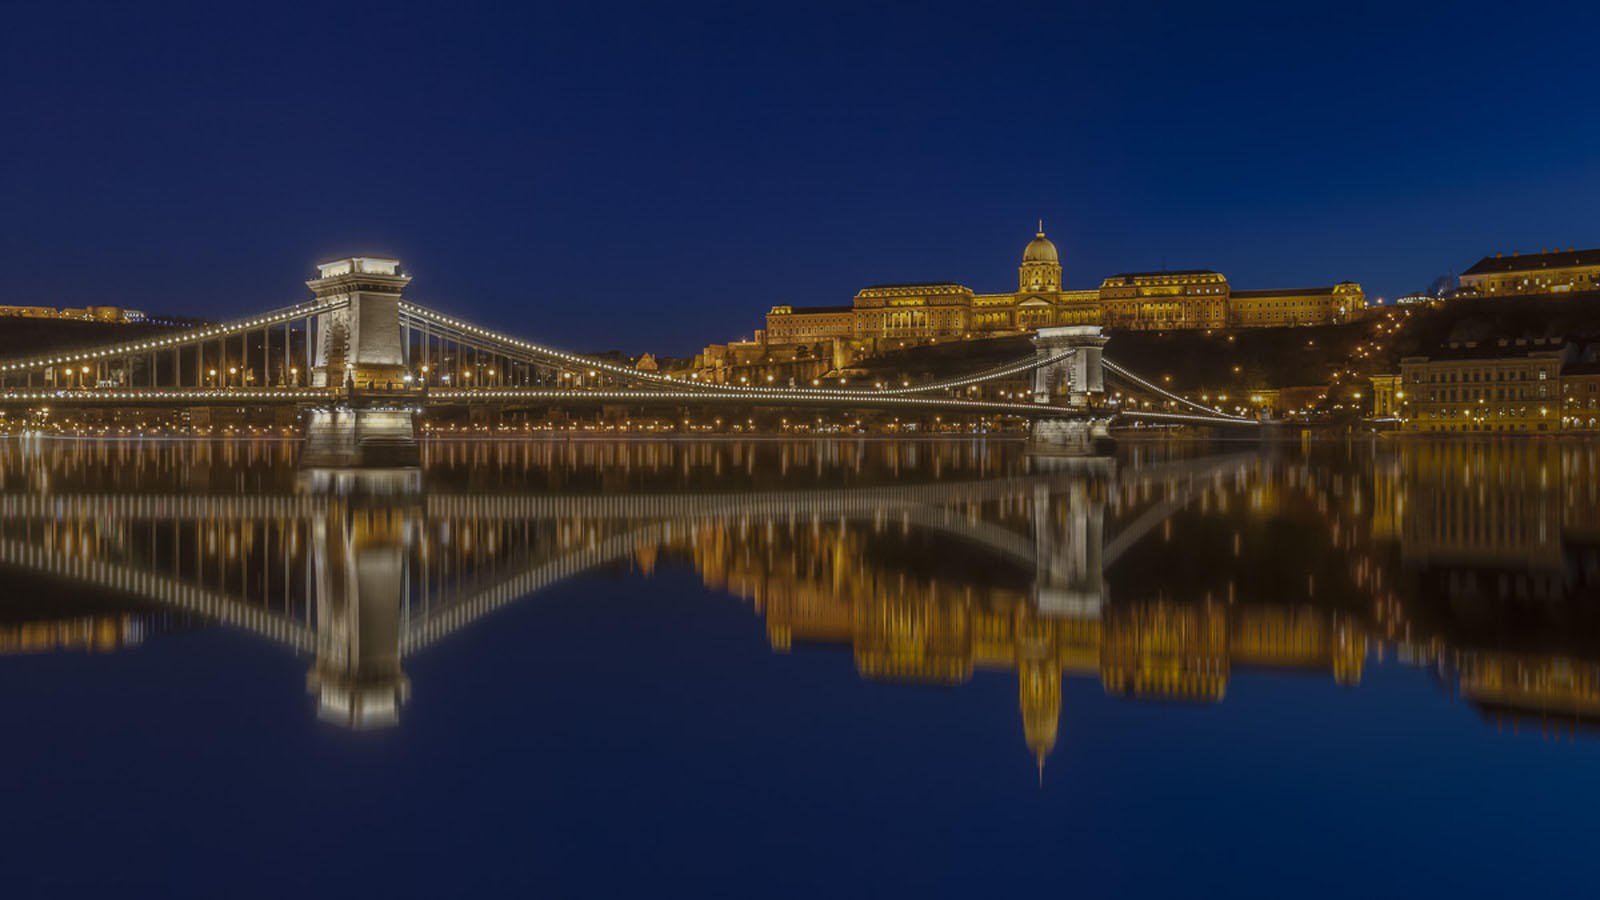 budapest is one of the best places to visit in europe